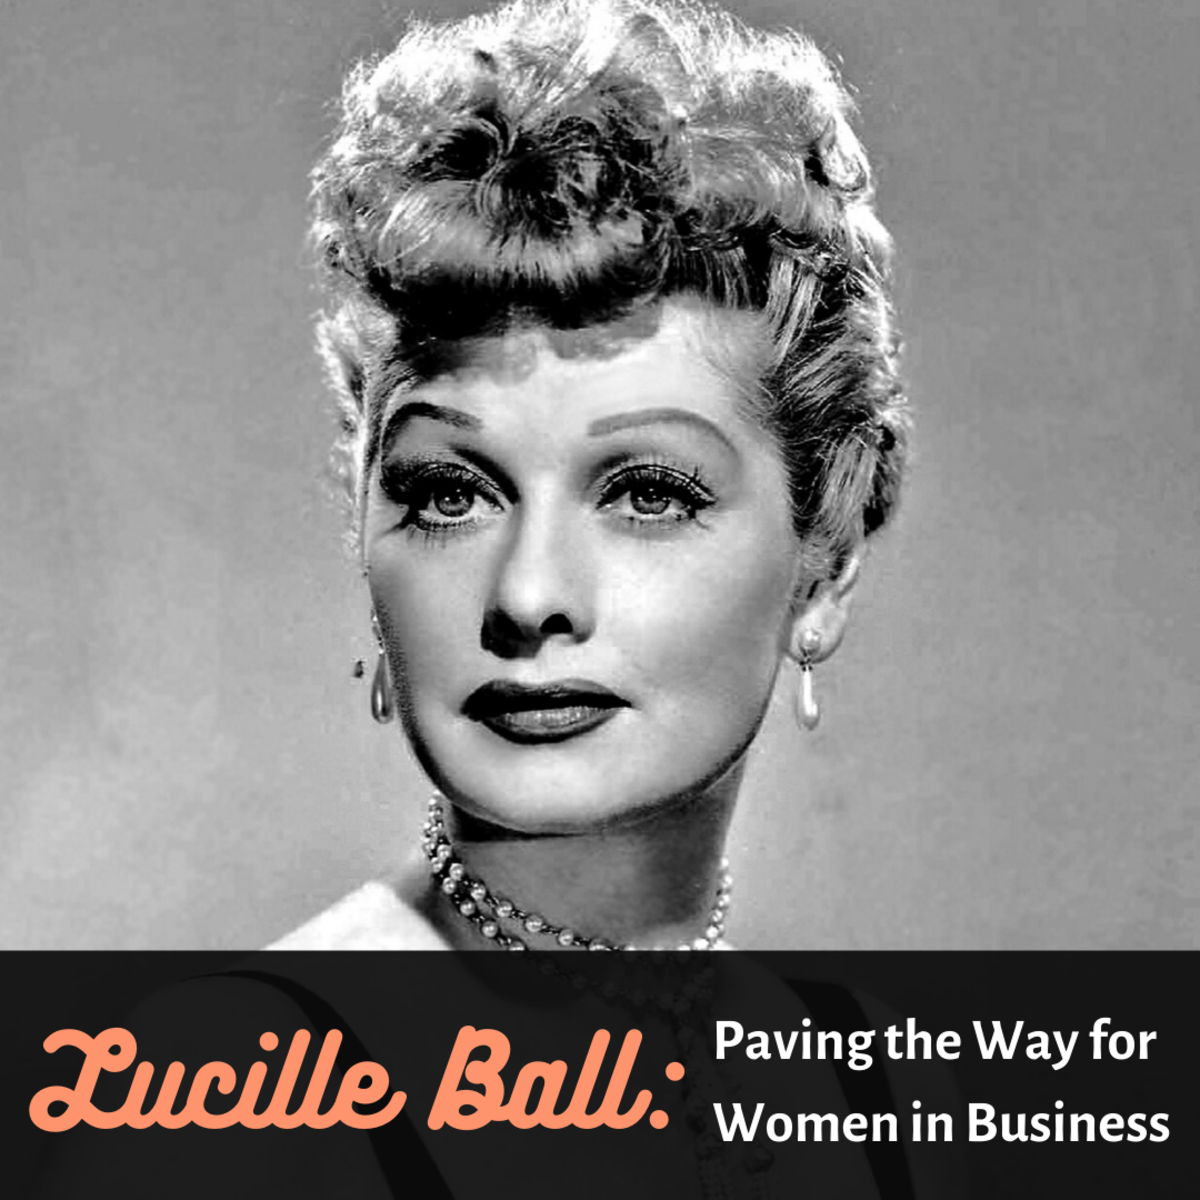 Learn more about Lucille Ball and how she broke ground for women in the business world.